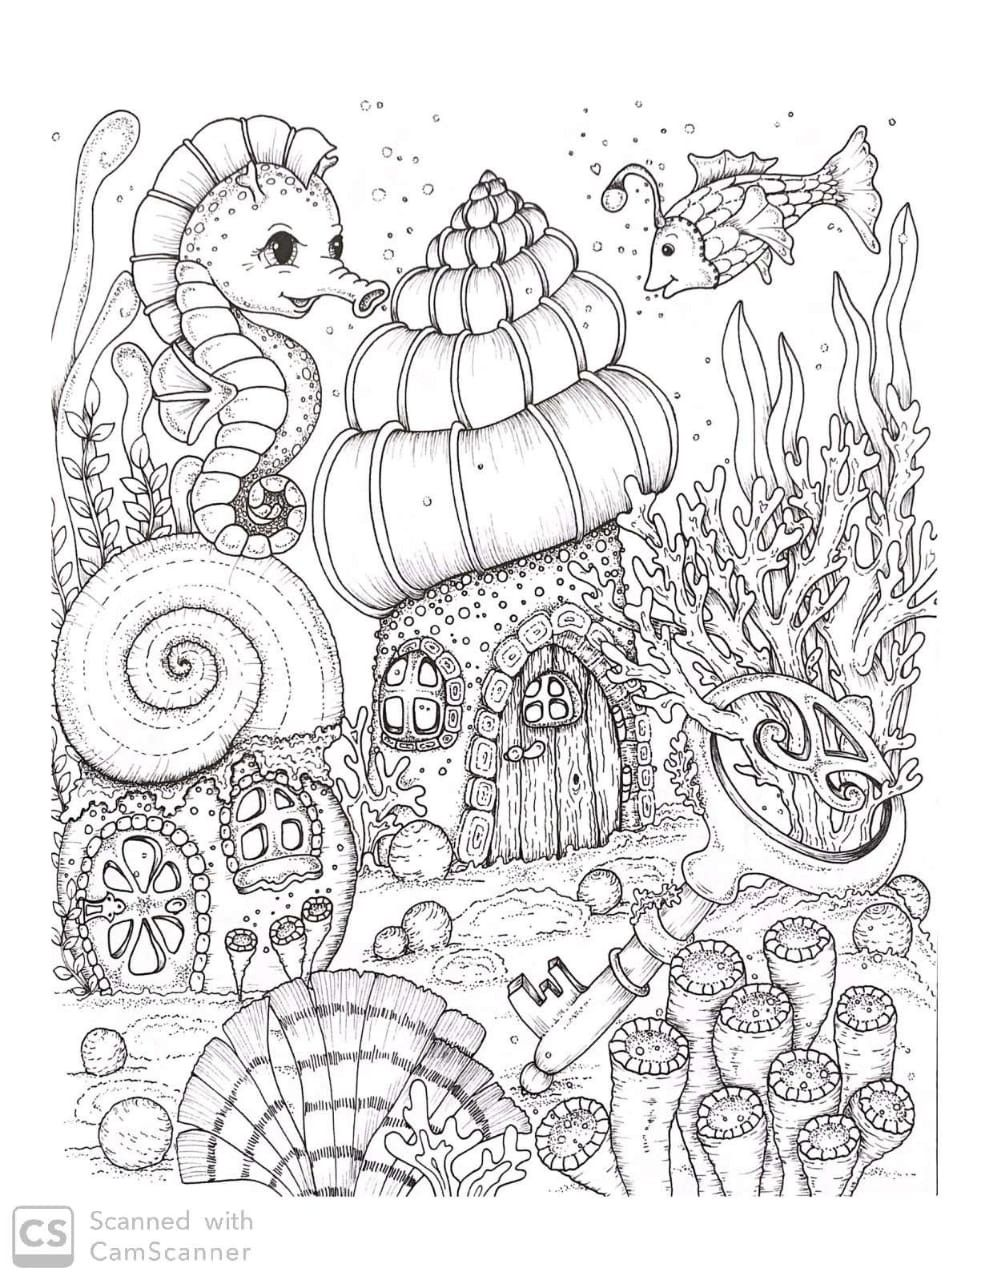 Pin By Morgan Aarmstrong On Maria Trolle Hanna Karlzon Klara Markova In 2020 Coloring Book Art Coloring Books Fairy Coloring Pages